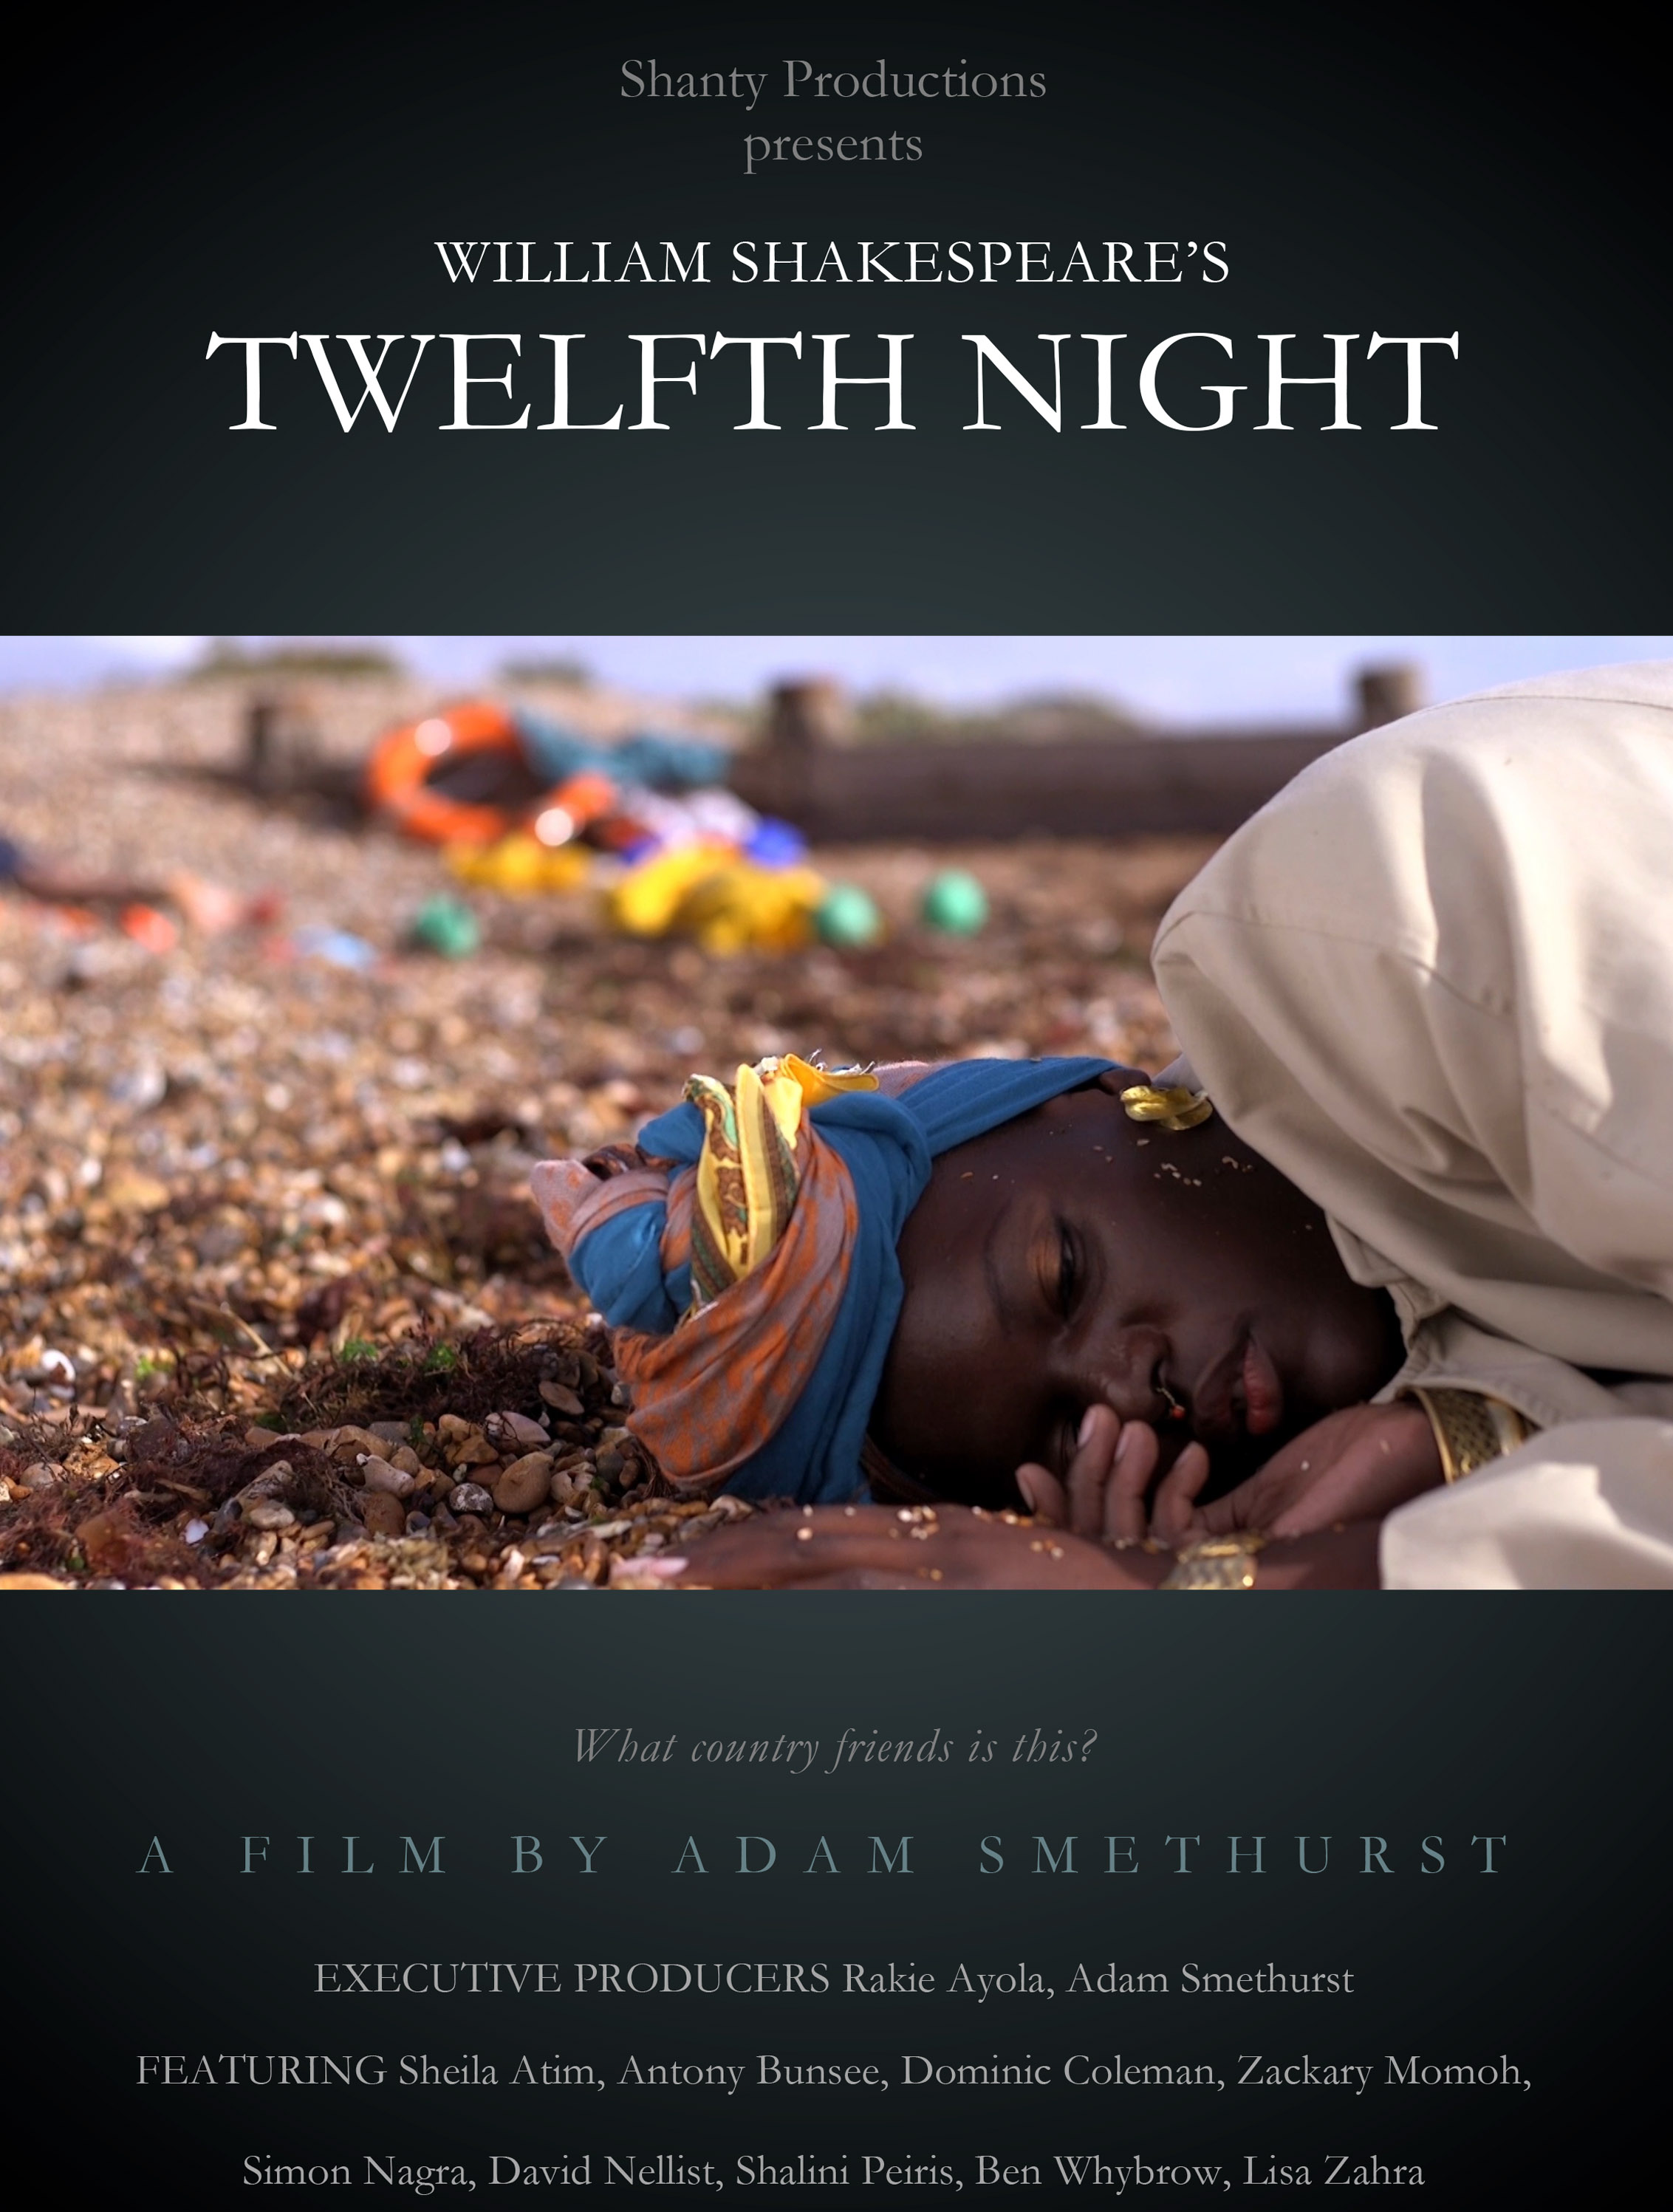 TWELFTH NIGHT FILM SCREENING